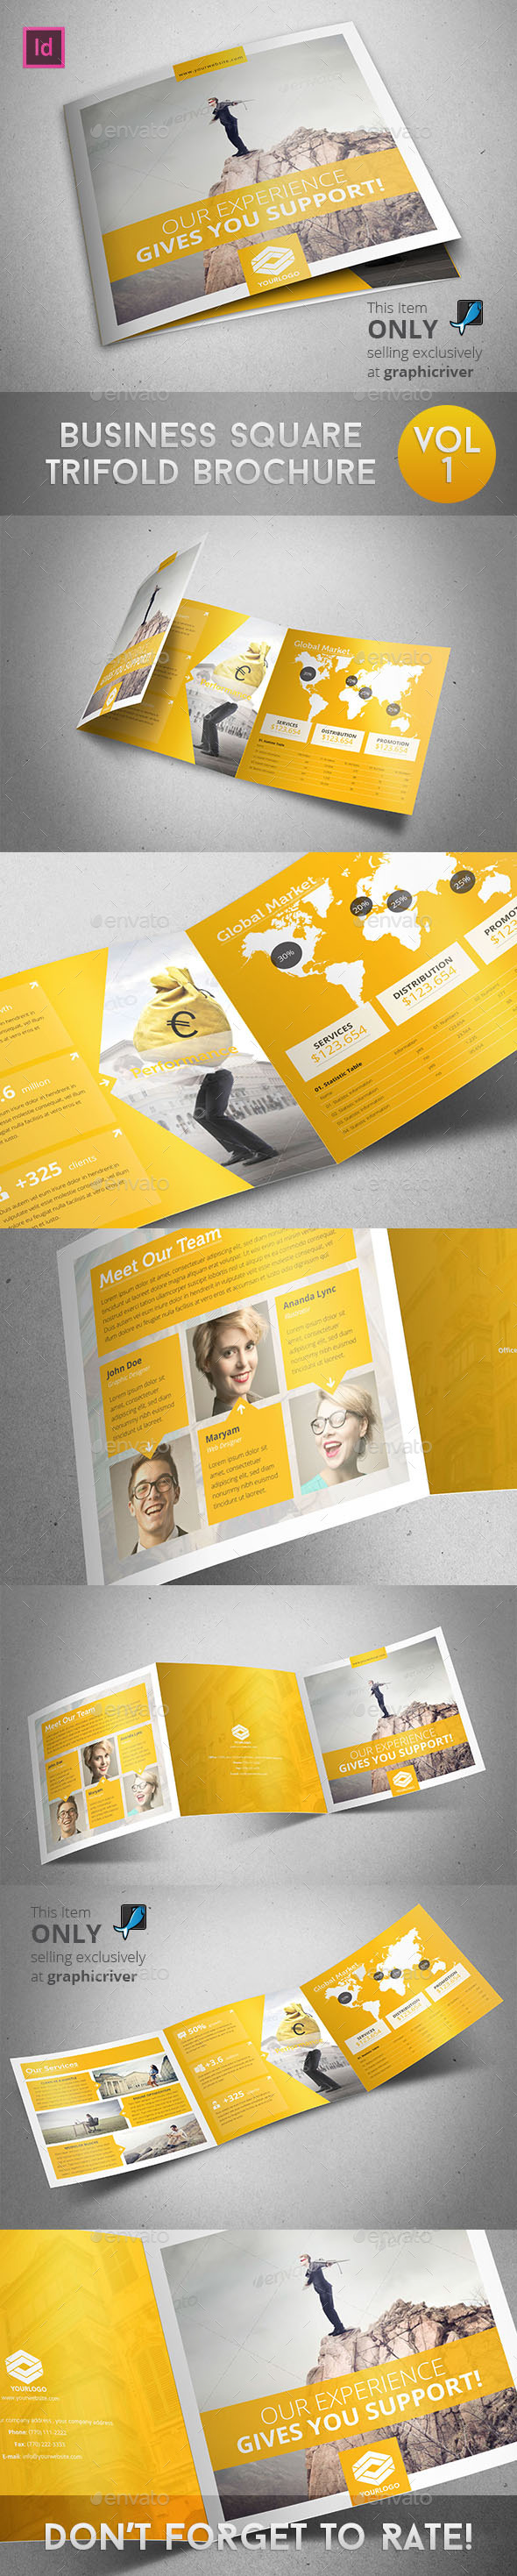 GraphicRiver Business Square Trifold Brochure 9800512